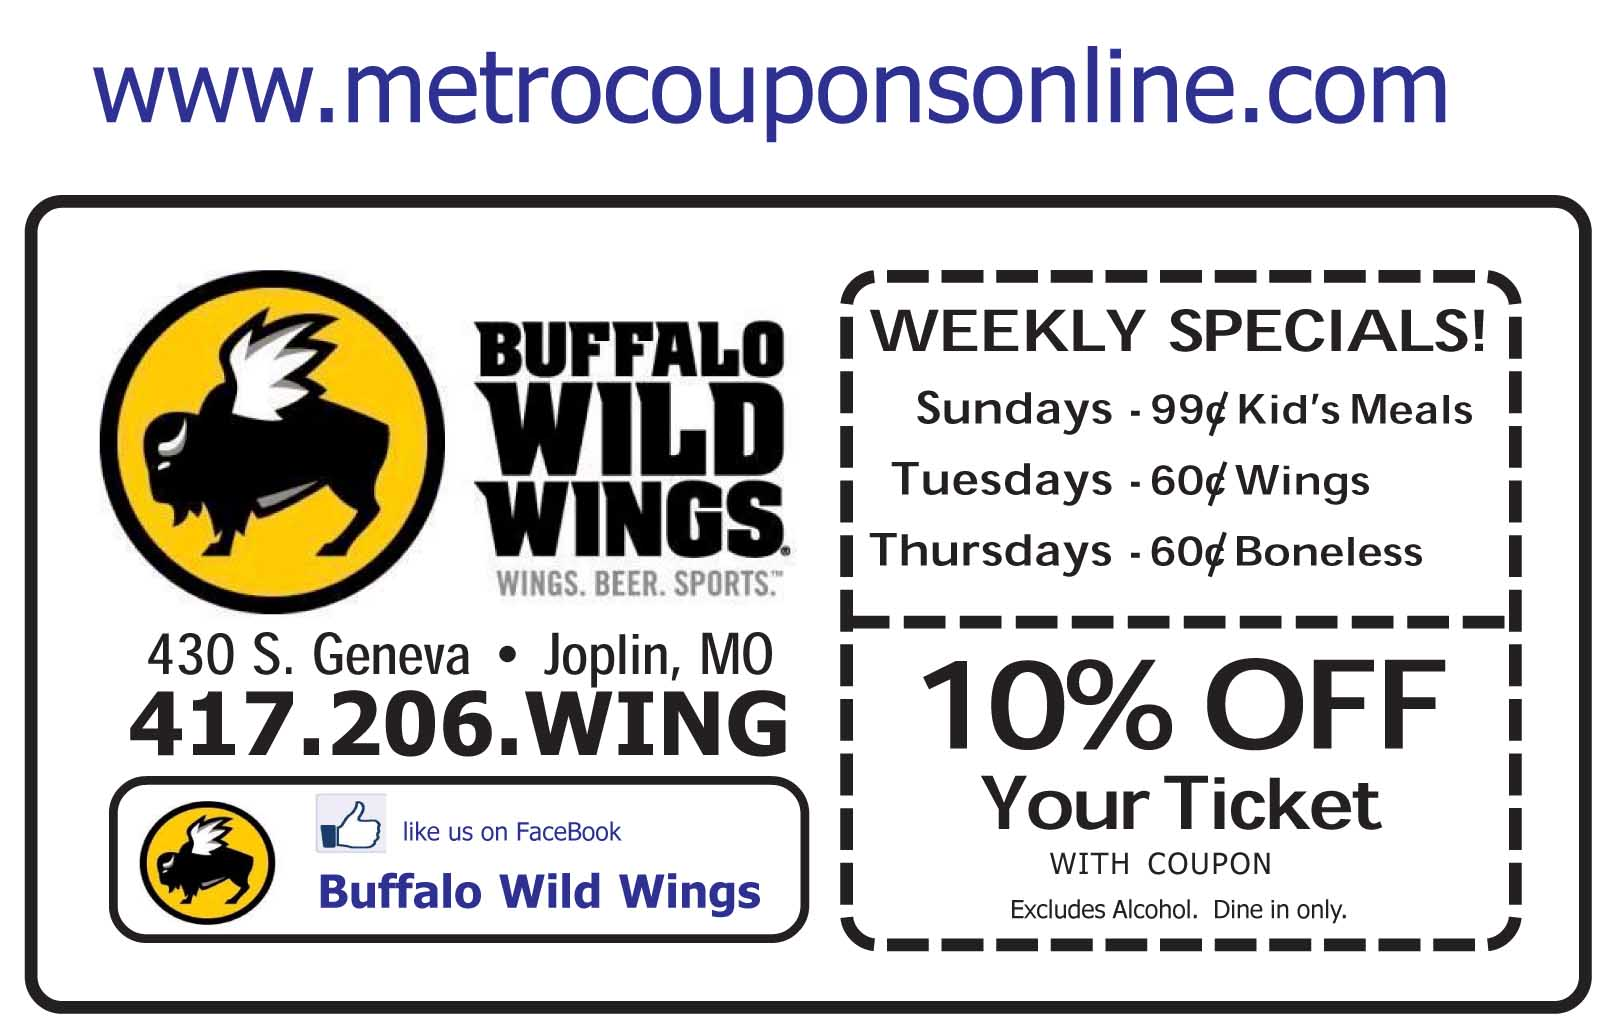 photograph relating to Buffalo Wild Wings Printable Coupons named Buffalo Wild Wings Discounted Coupon Print Coupon King